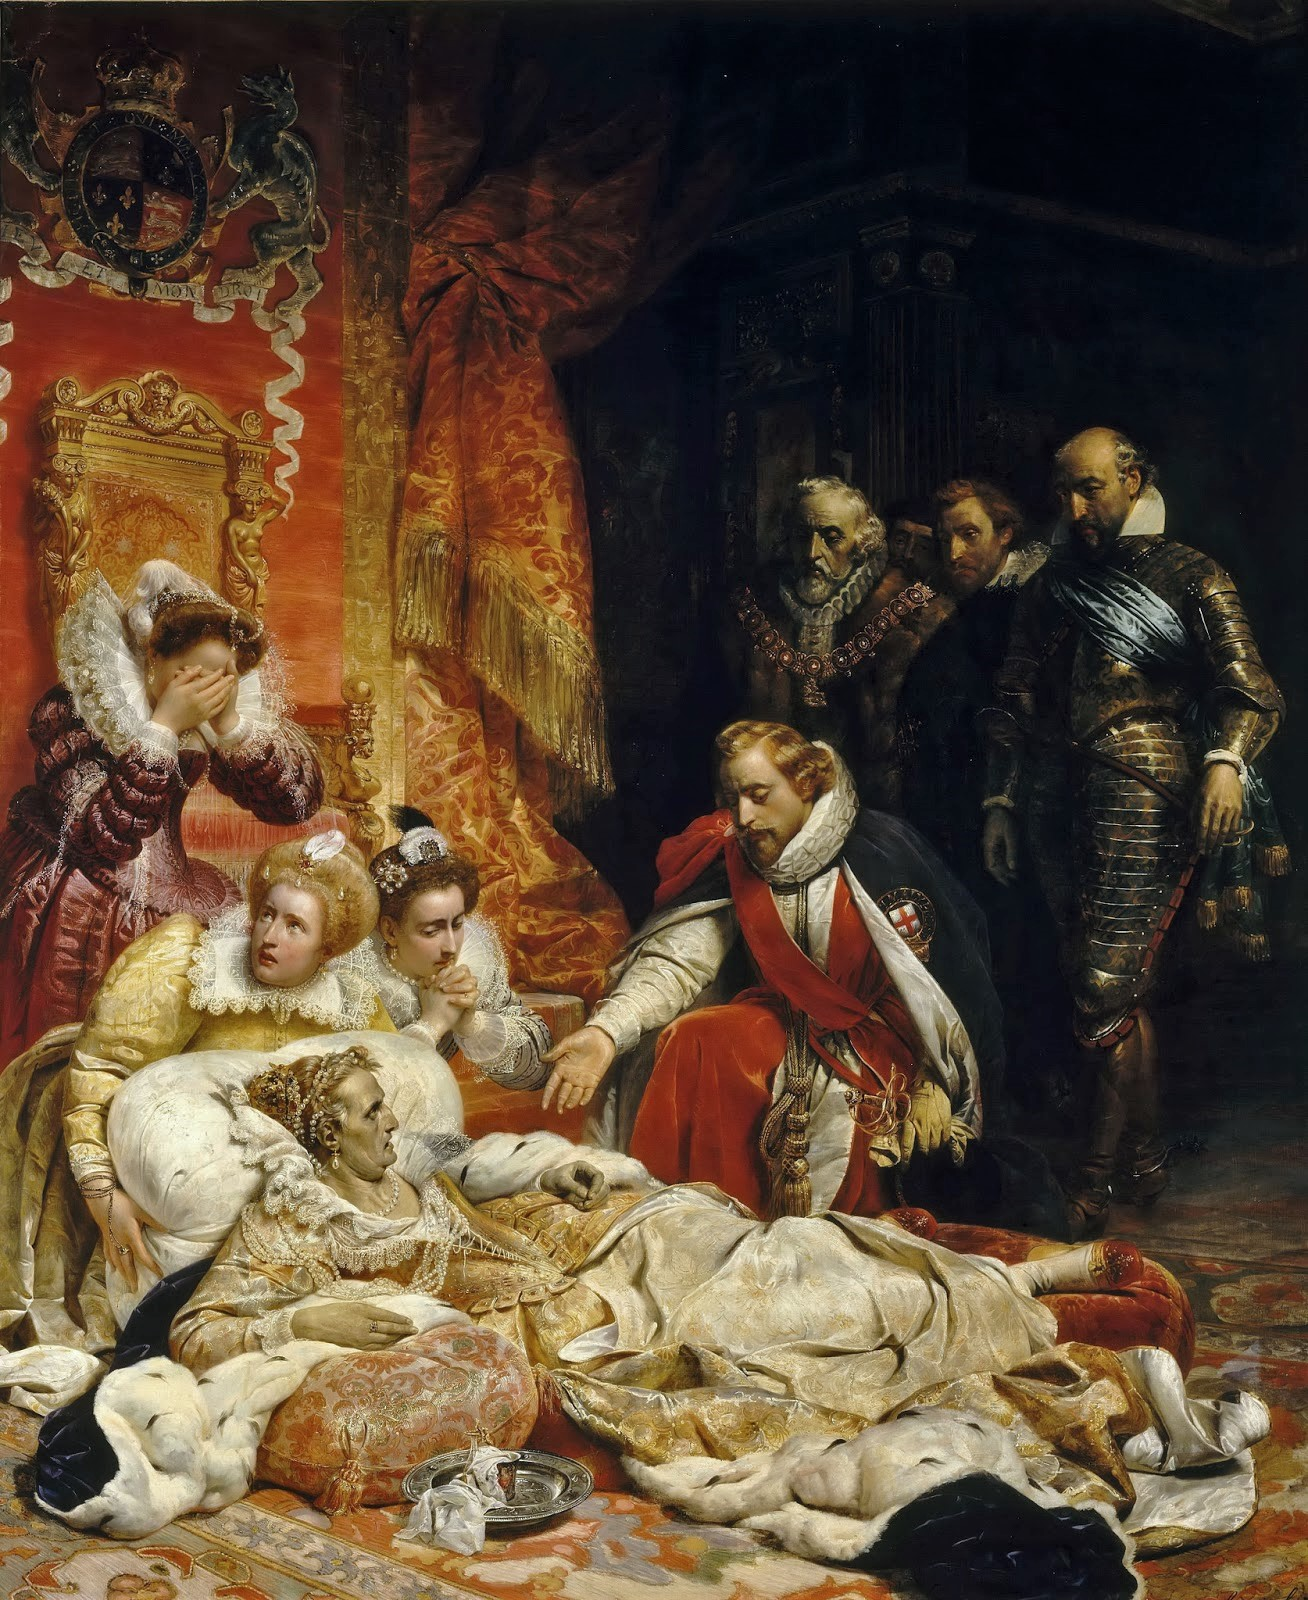 The death of Queen Elizabeth 1st : Paul Delaroche (1828)